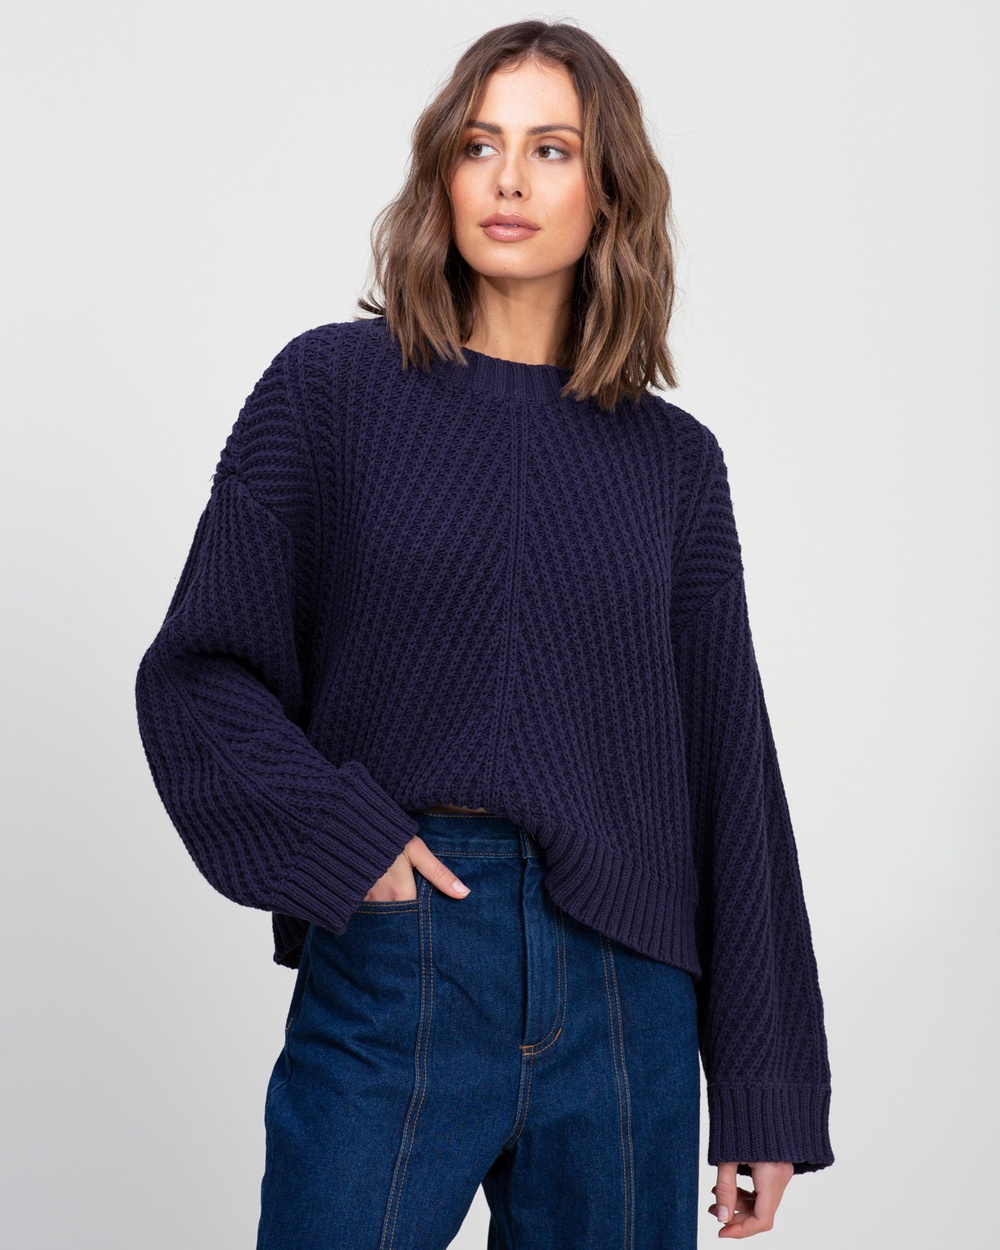 AERE Relaxed Organic Cotton Jumper Jumpers & Cardigans Midnight Navy